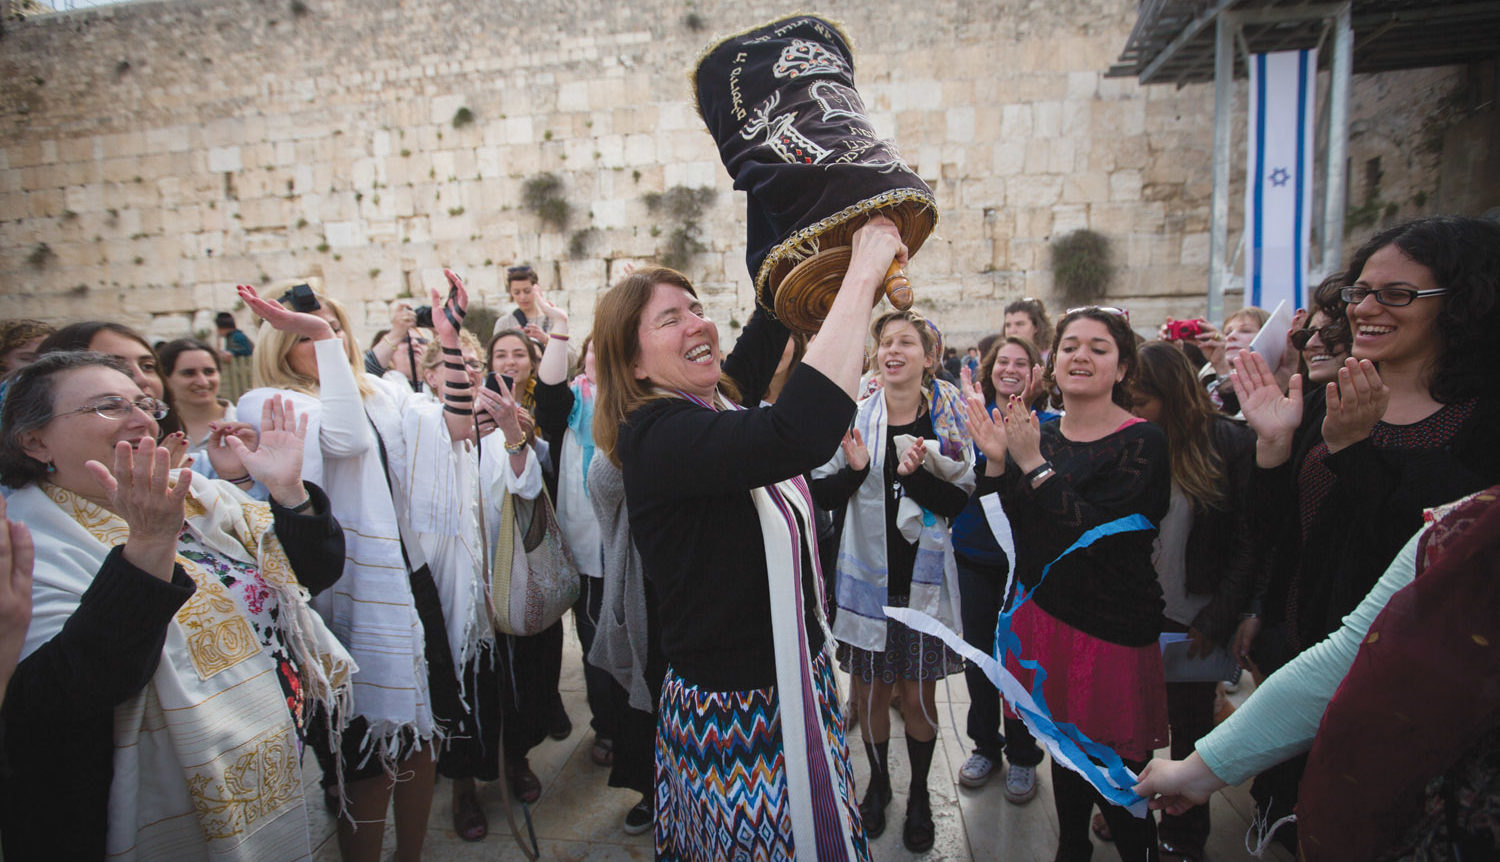 Singer dances in the center of a group of women, smiling and hosting a Torah scroll up over her head